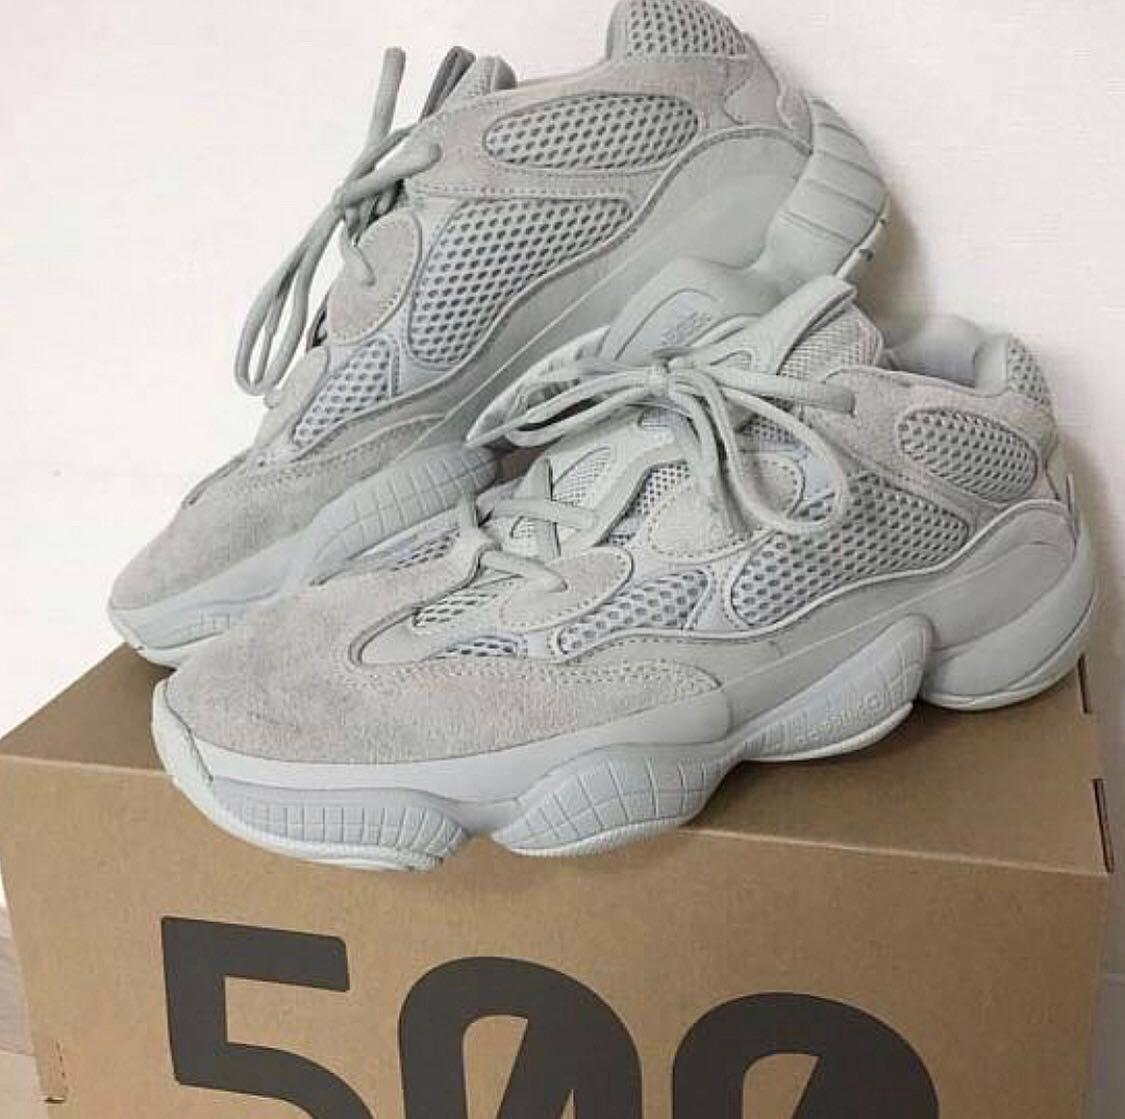 brand new 33aca 8fa0c WTS / WTT ADIDAS YEEZY BOOST 500 - SALT, Men's Fashion ...